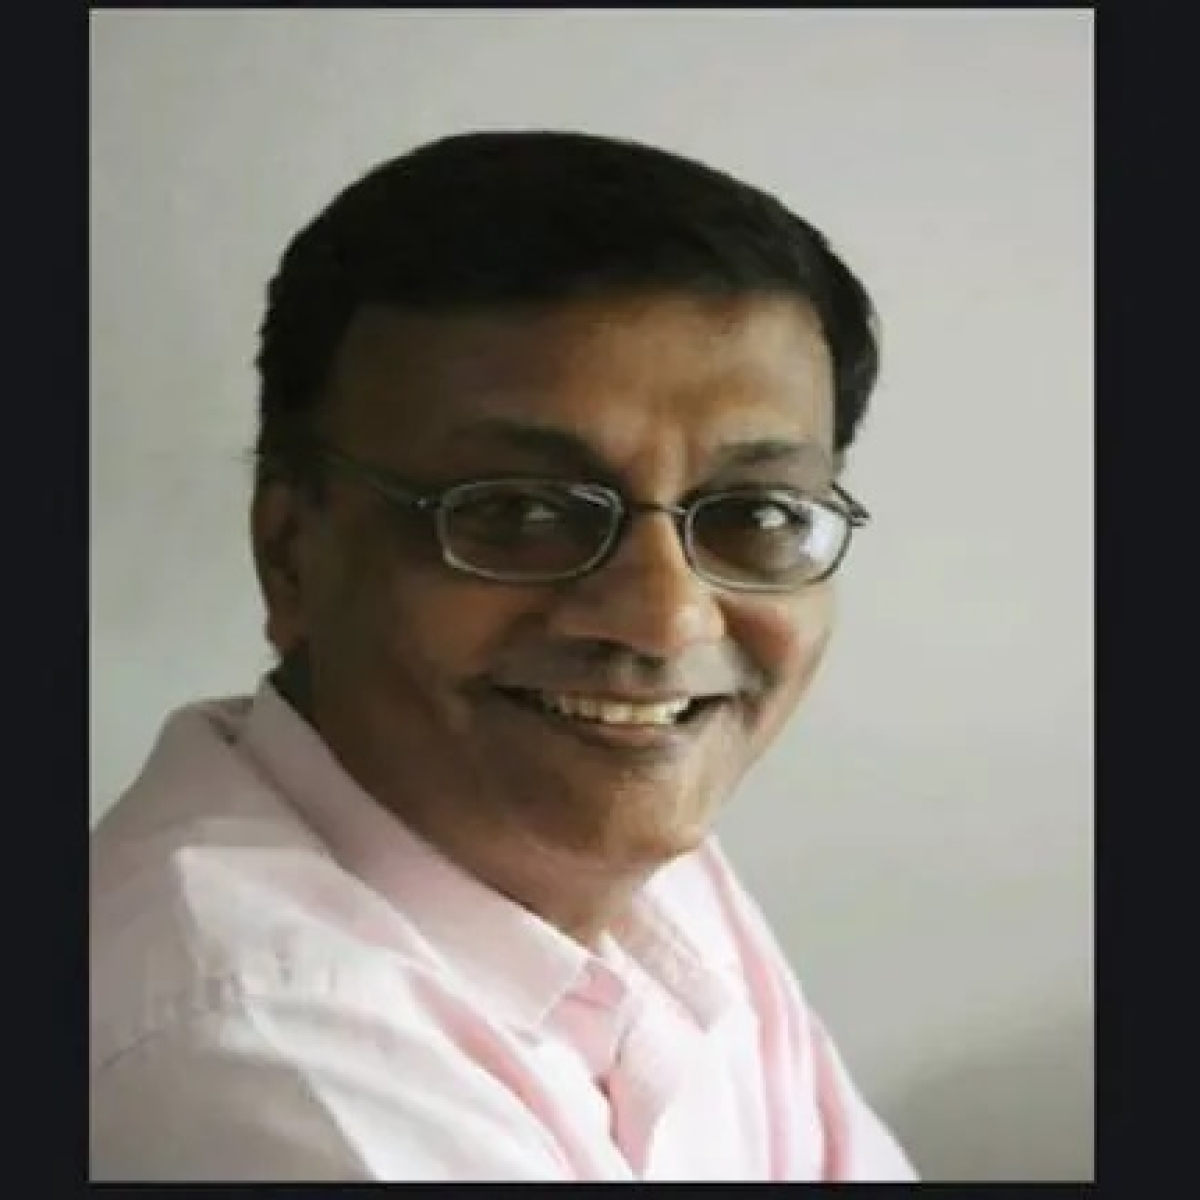 Senior journalist Sunil Jain passes away due to COVID-19-related complications, PM Modi condoles demise